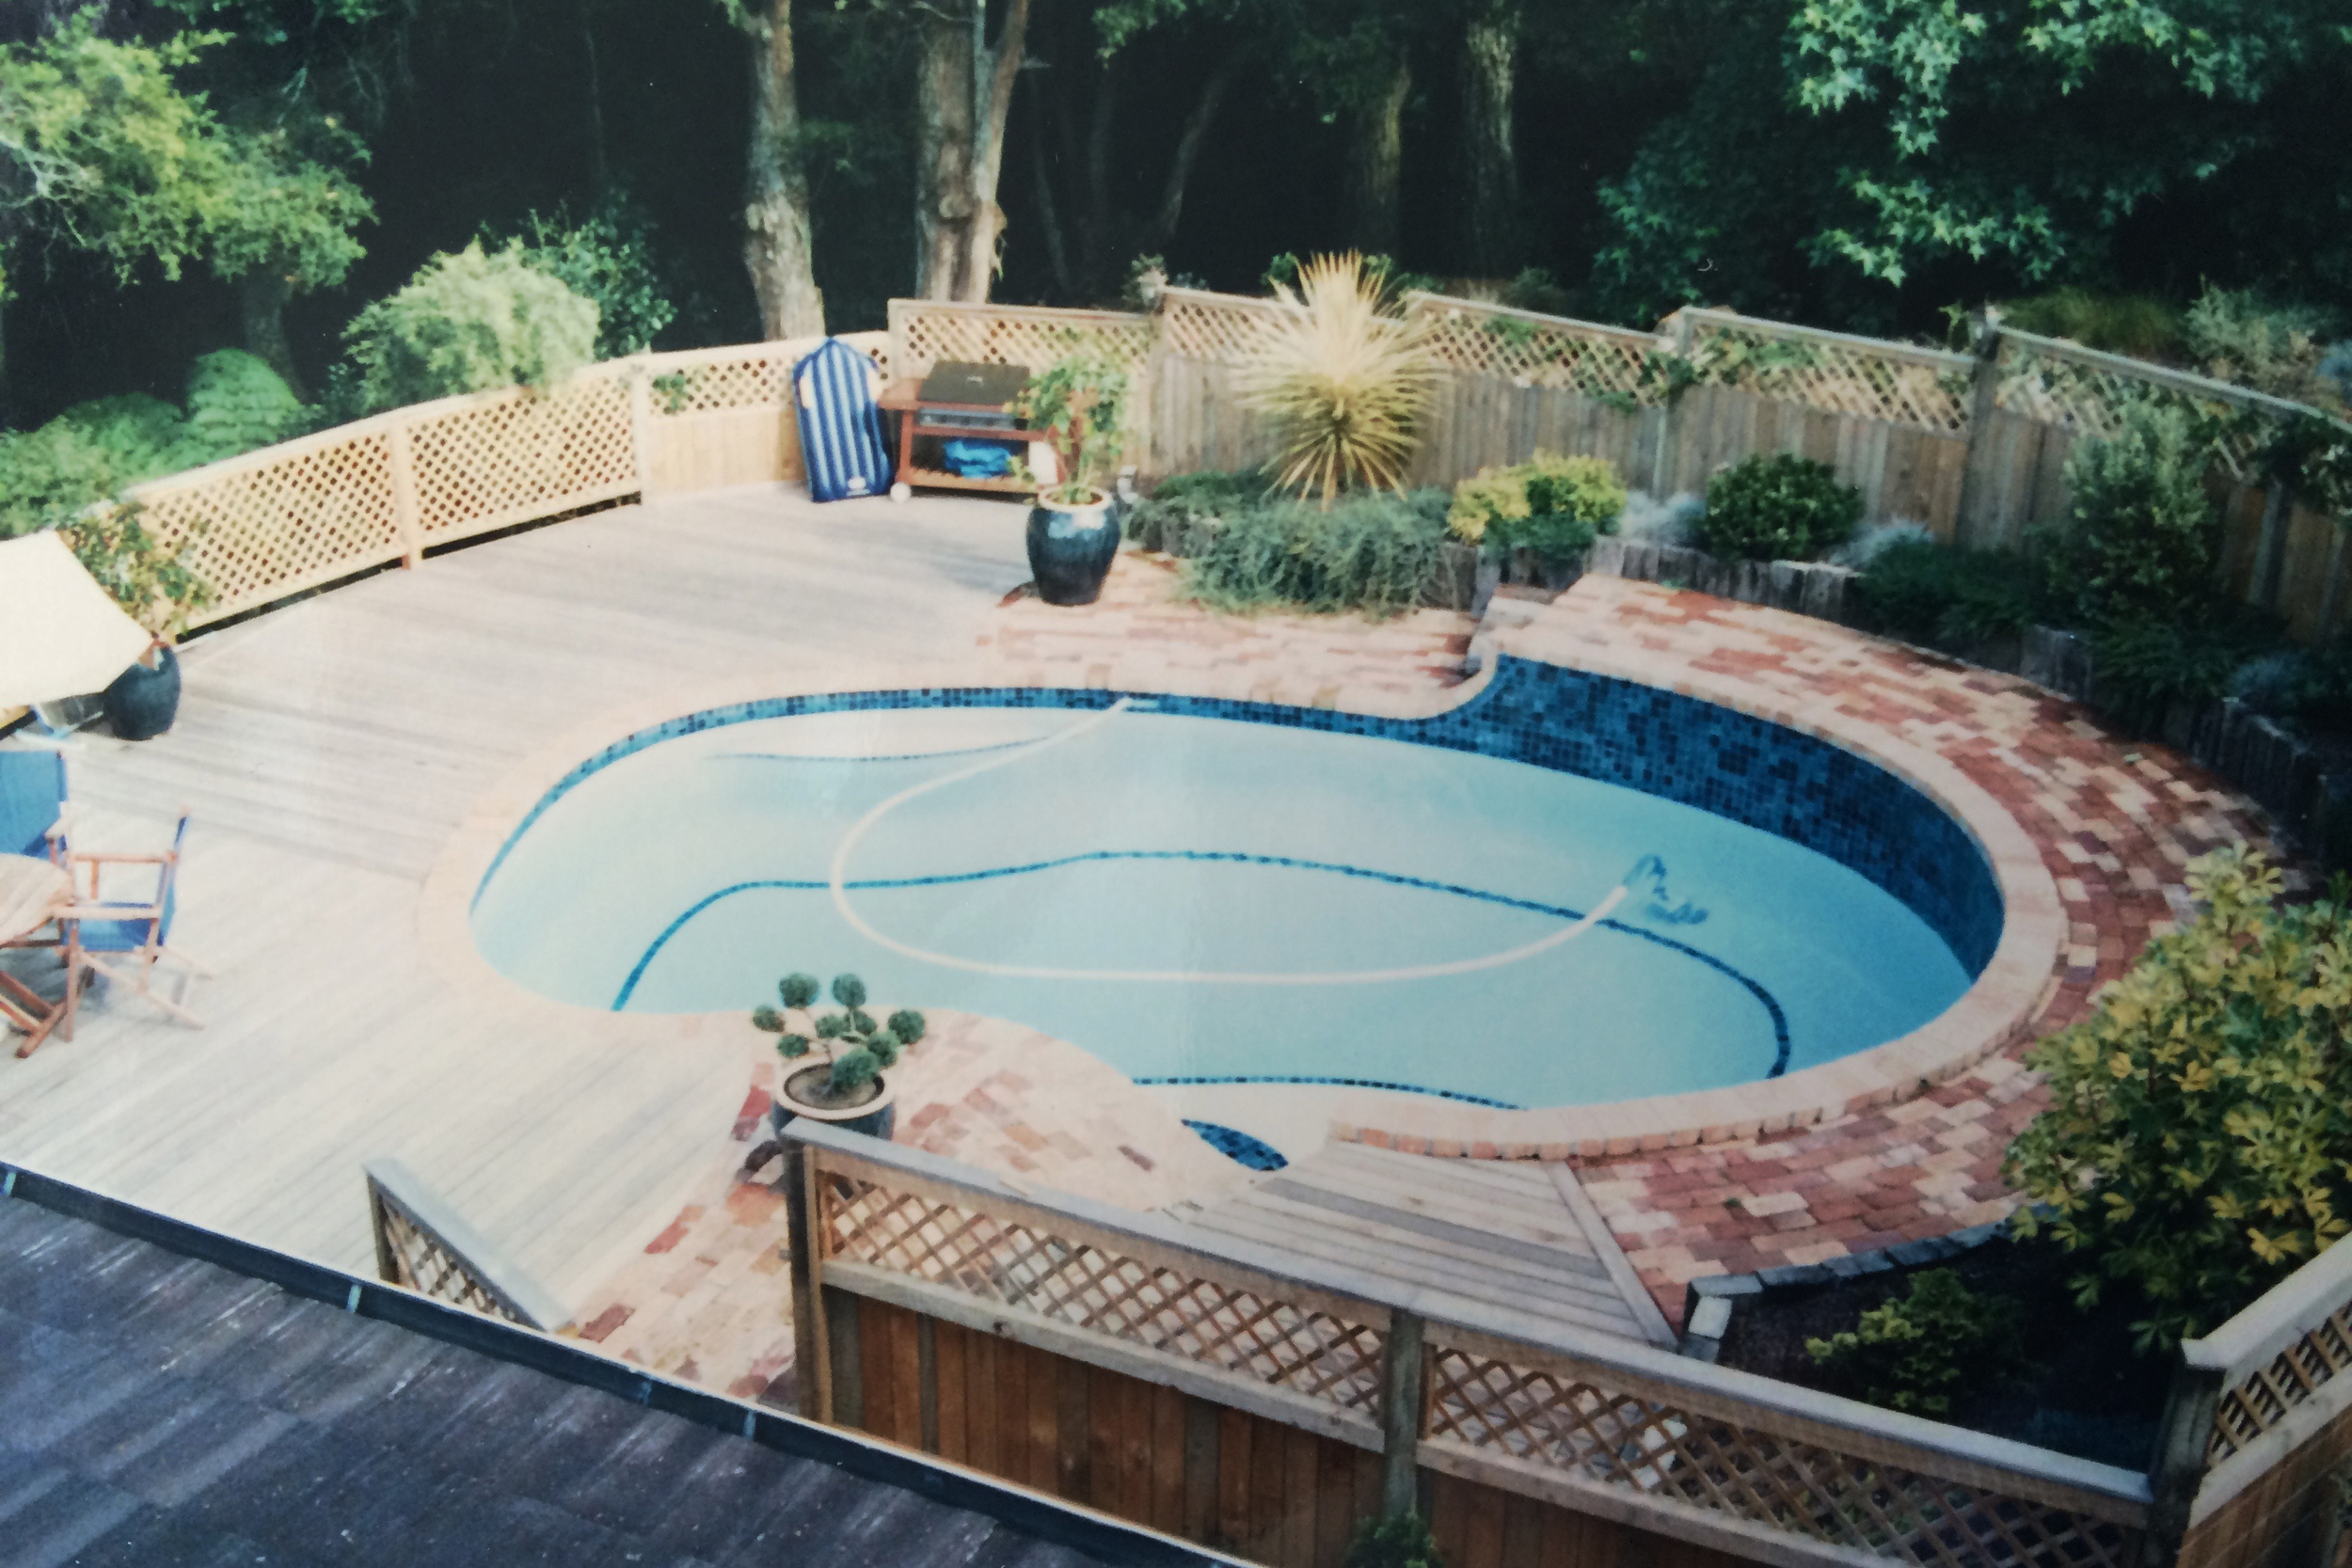 Pool, surrounding planting and fencing